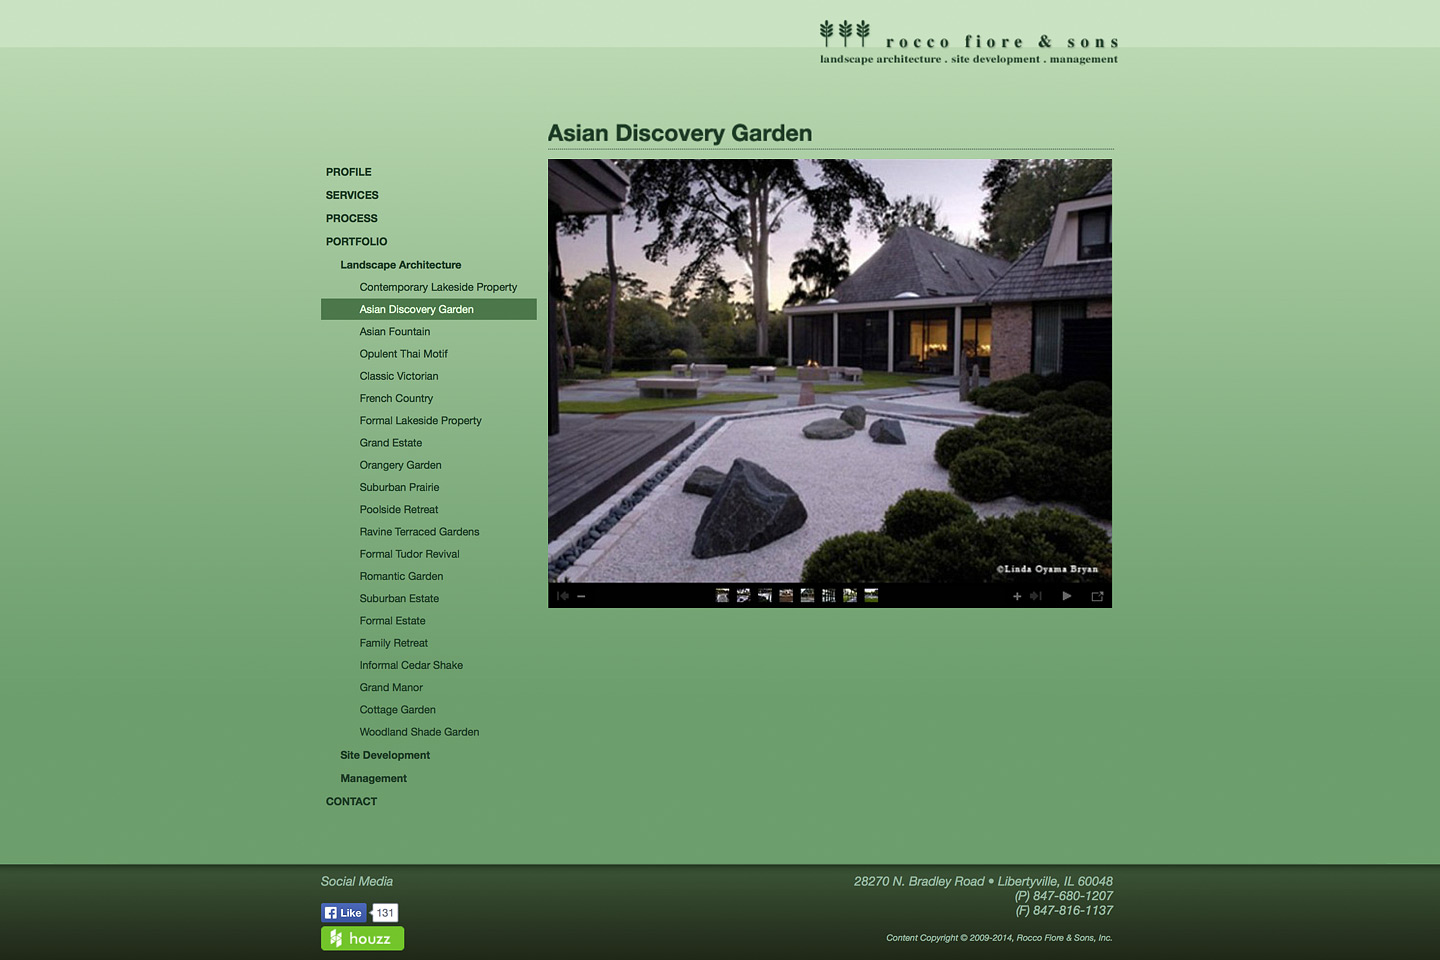 a screen capture of a rocco fiore & sons web photo gallery designed by 4d, inc, featuring a project called asian discovery garden